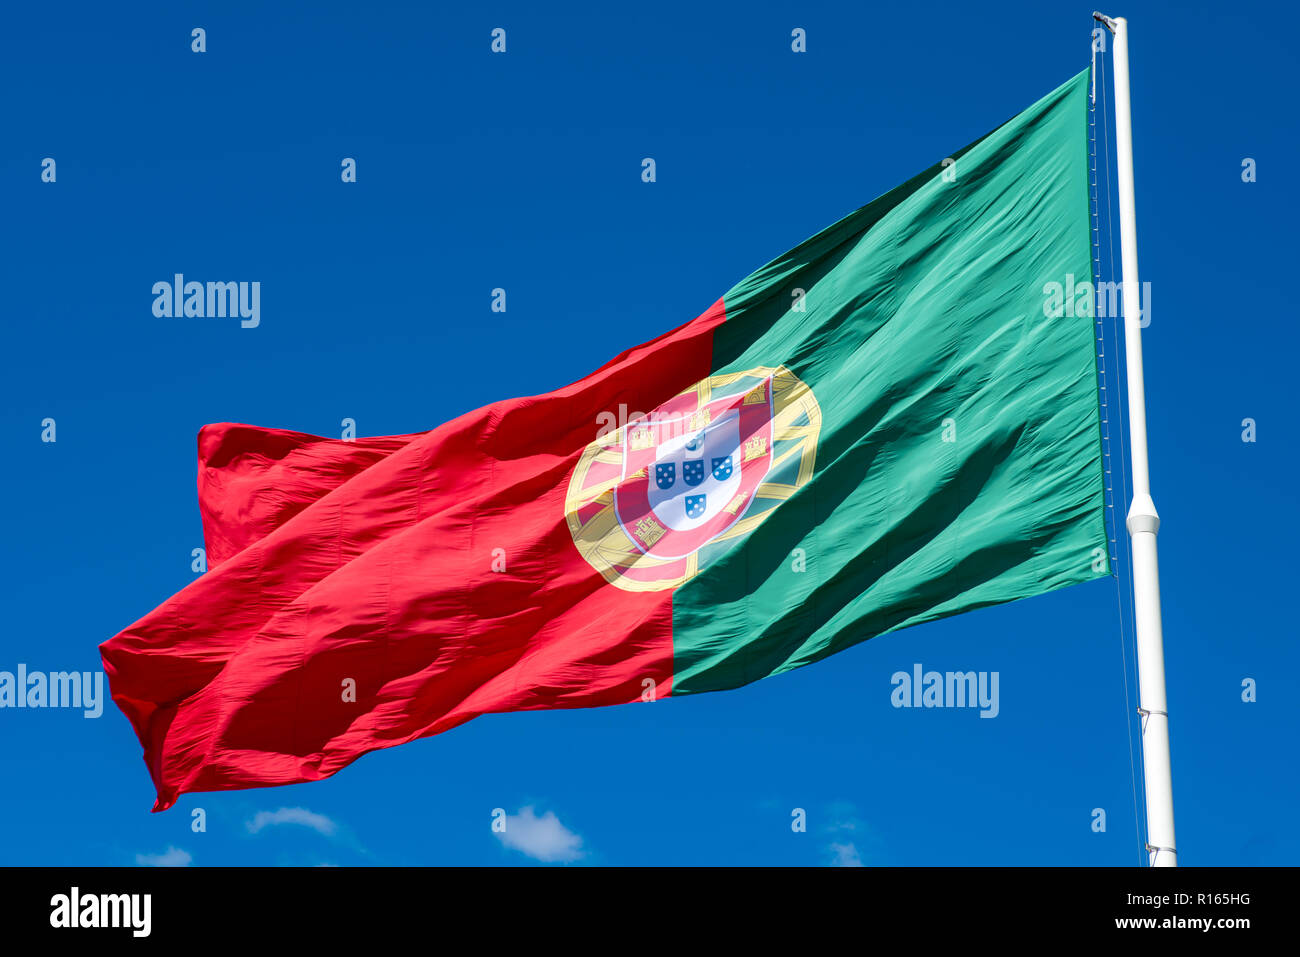 National flag of Portugal on a flagpole in front of blue sky. - Stock Image